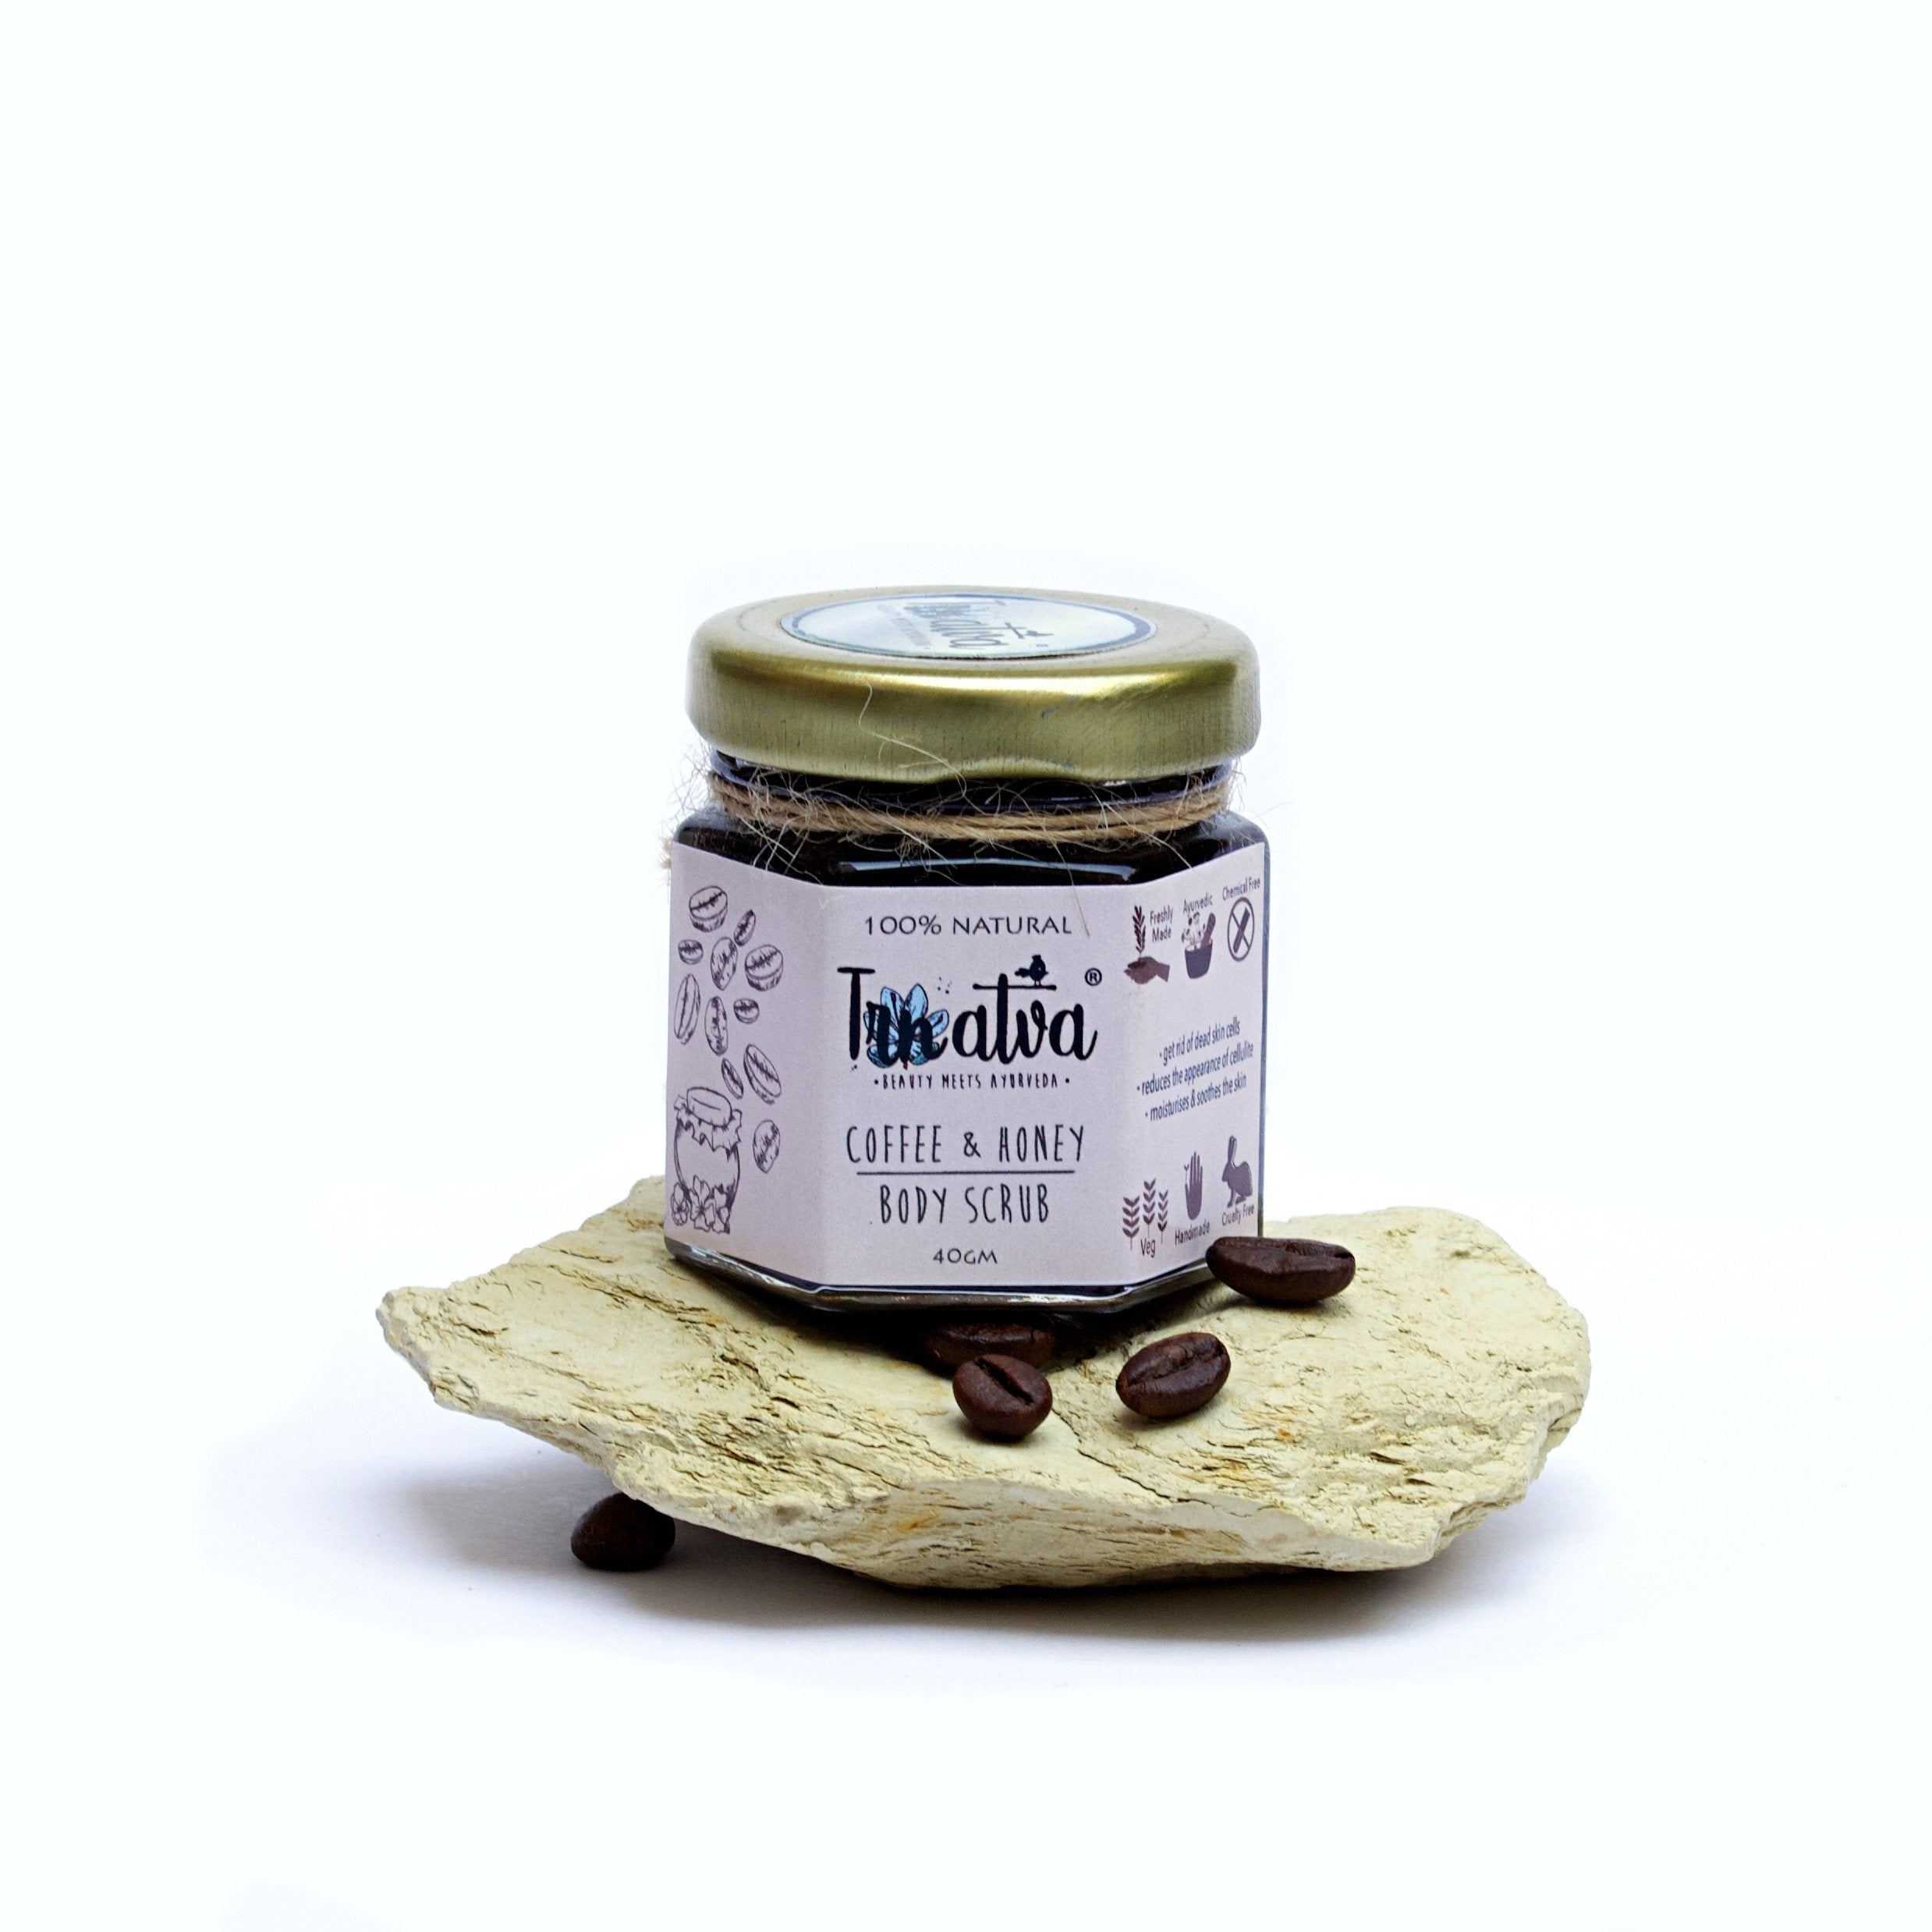 Coffee & Honey Body Scrub - SOUL EARTH